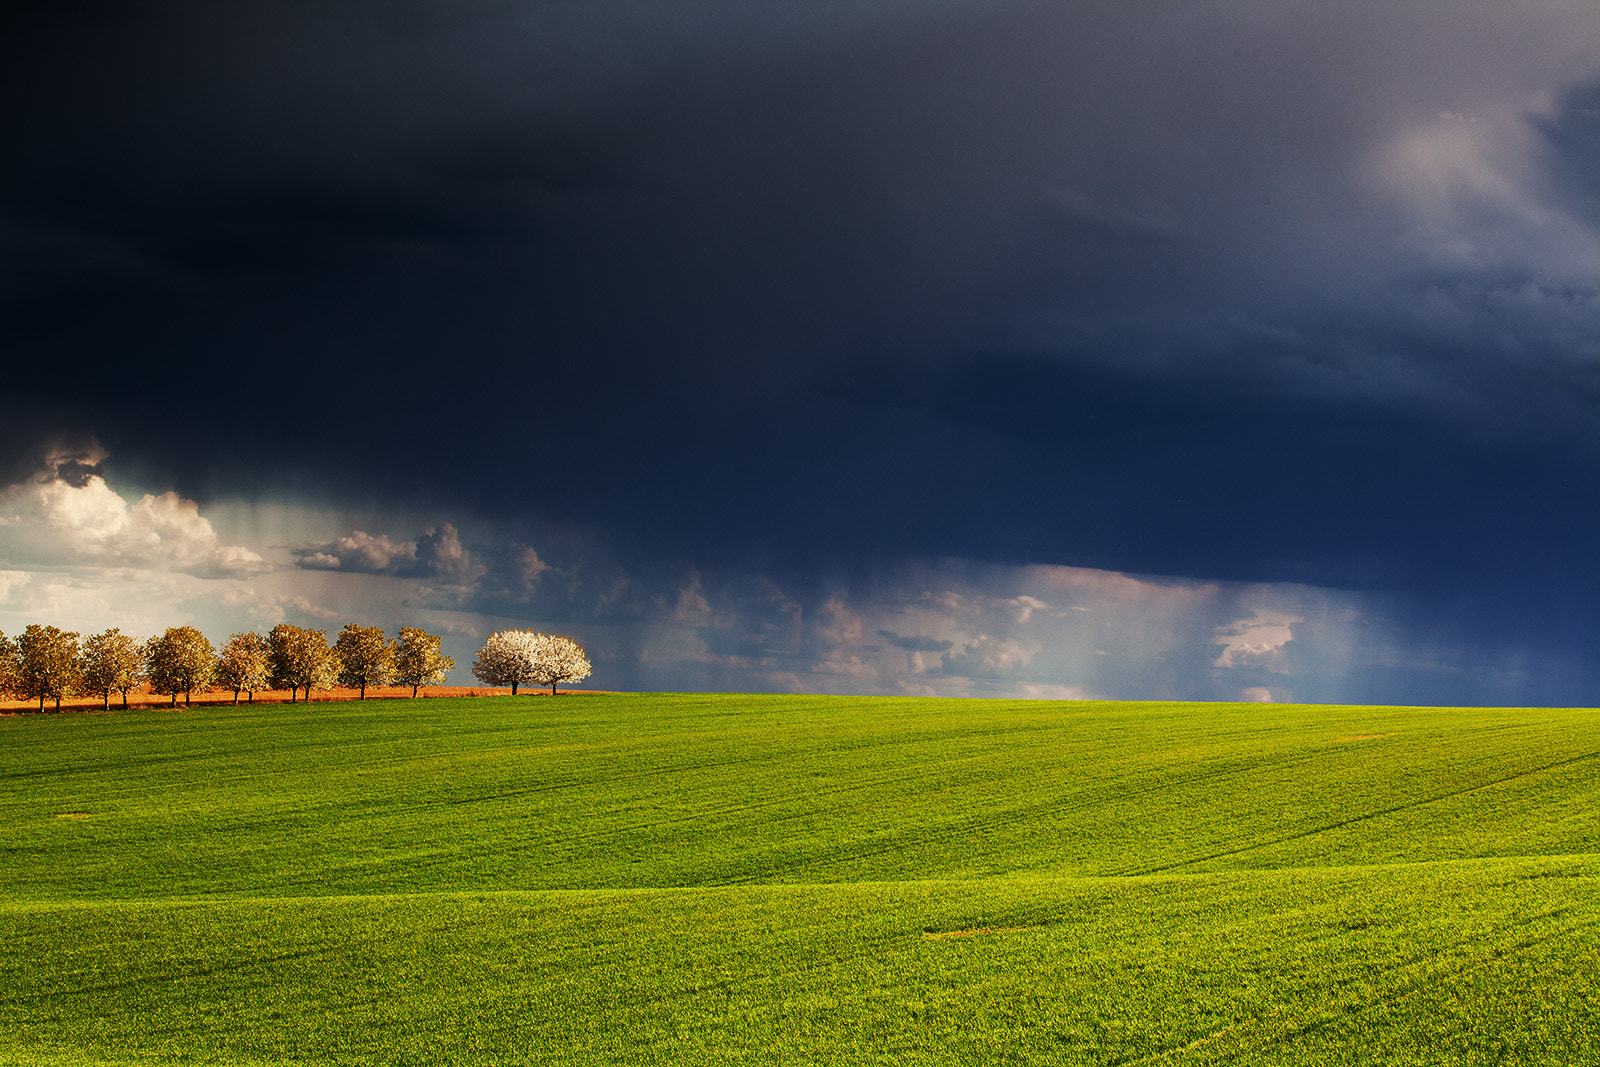 Photograph the approaching storm by Wael Massalkhi on 500px